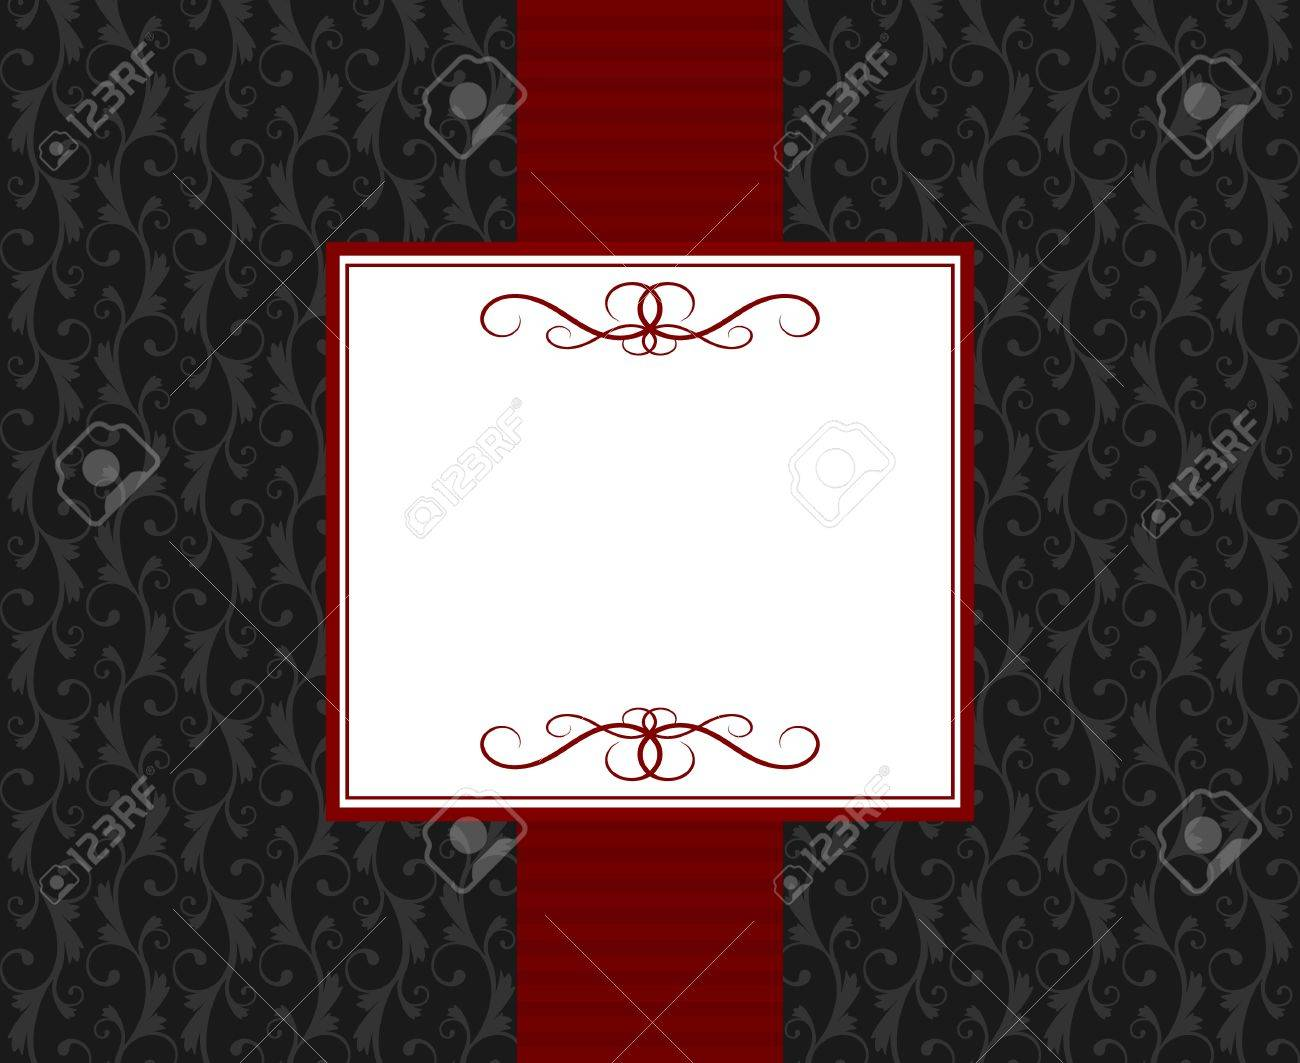 Greeting card template in vintage style. Elements are grouped and layered for easy editng. Stock Vector - 12027160